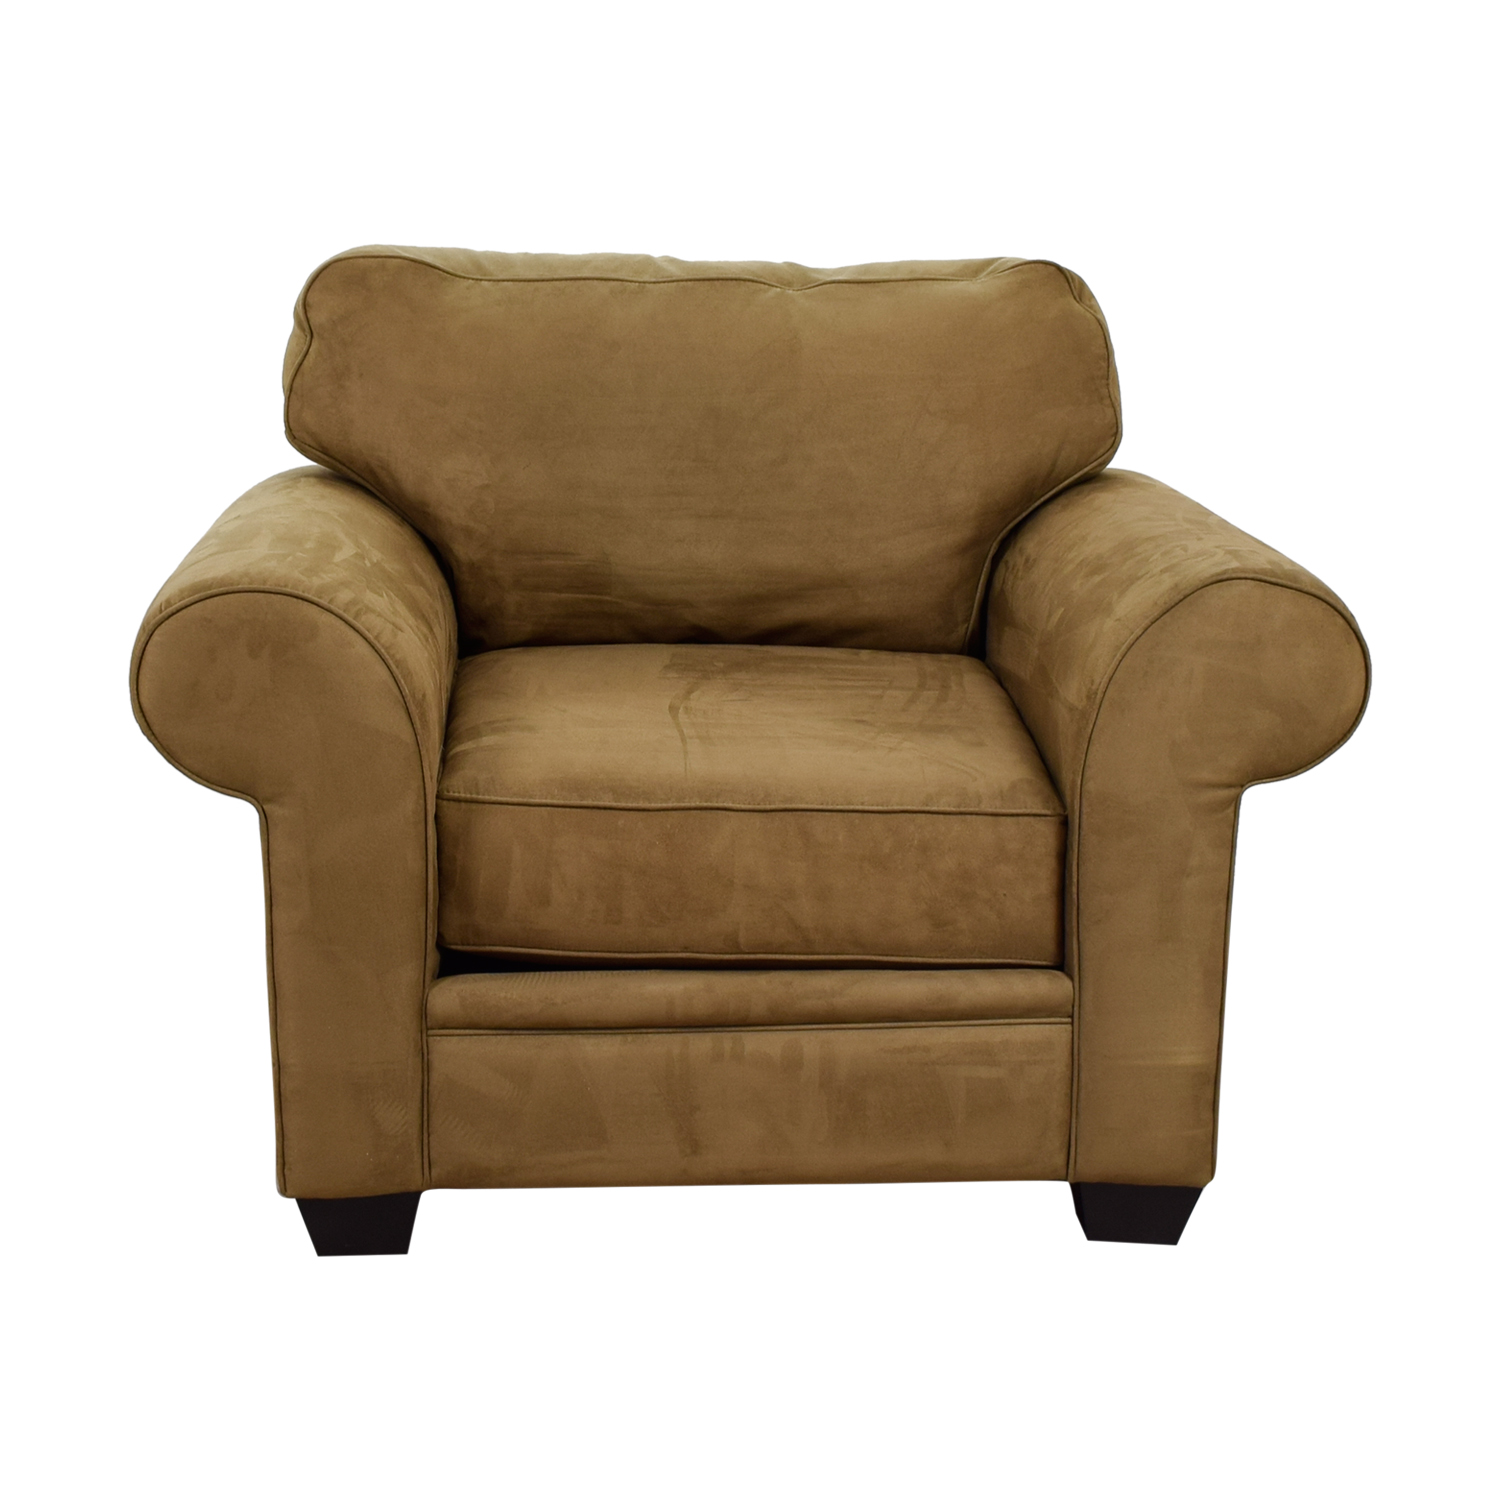 Macy's Macy's Tan Oversized Armchair second hand